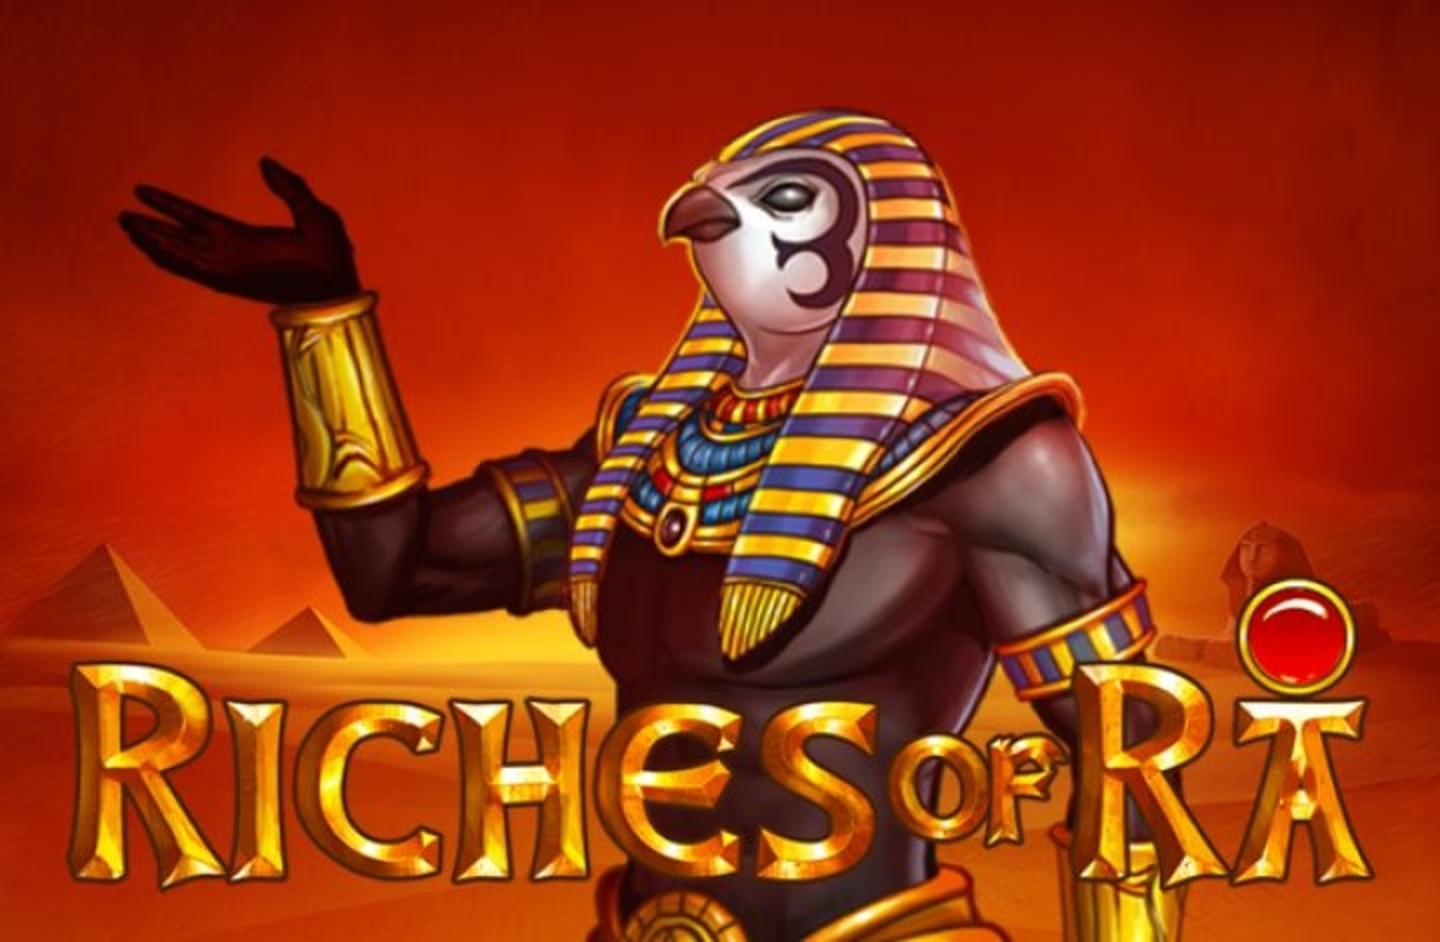 The Riches of Ra Slot Online Slot Demo Game by Play'n Go